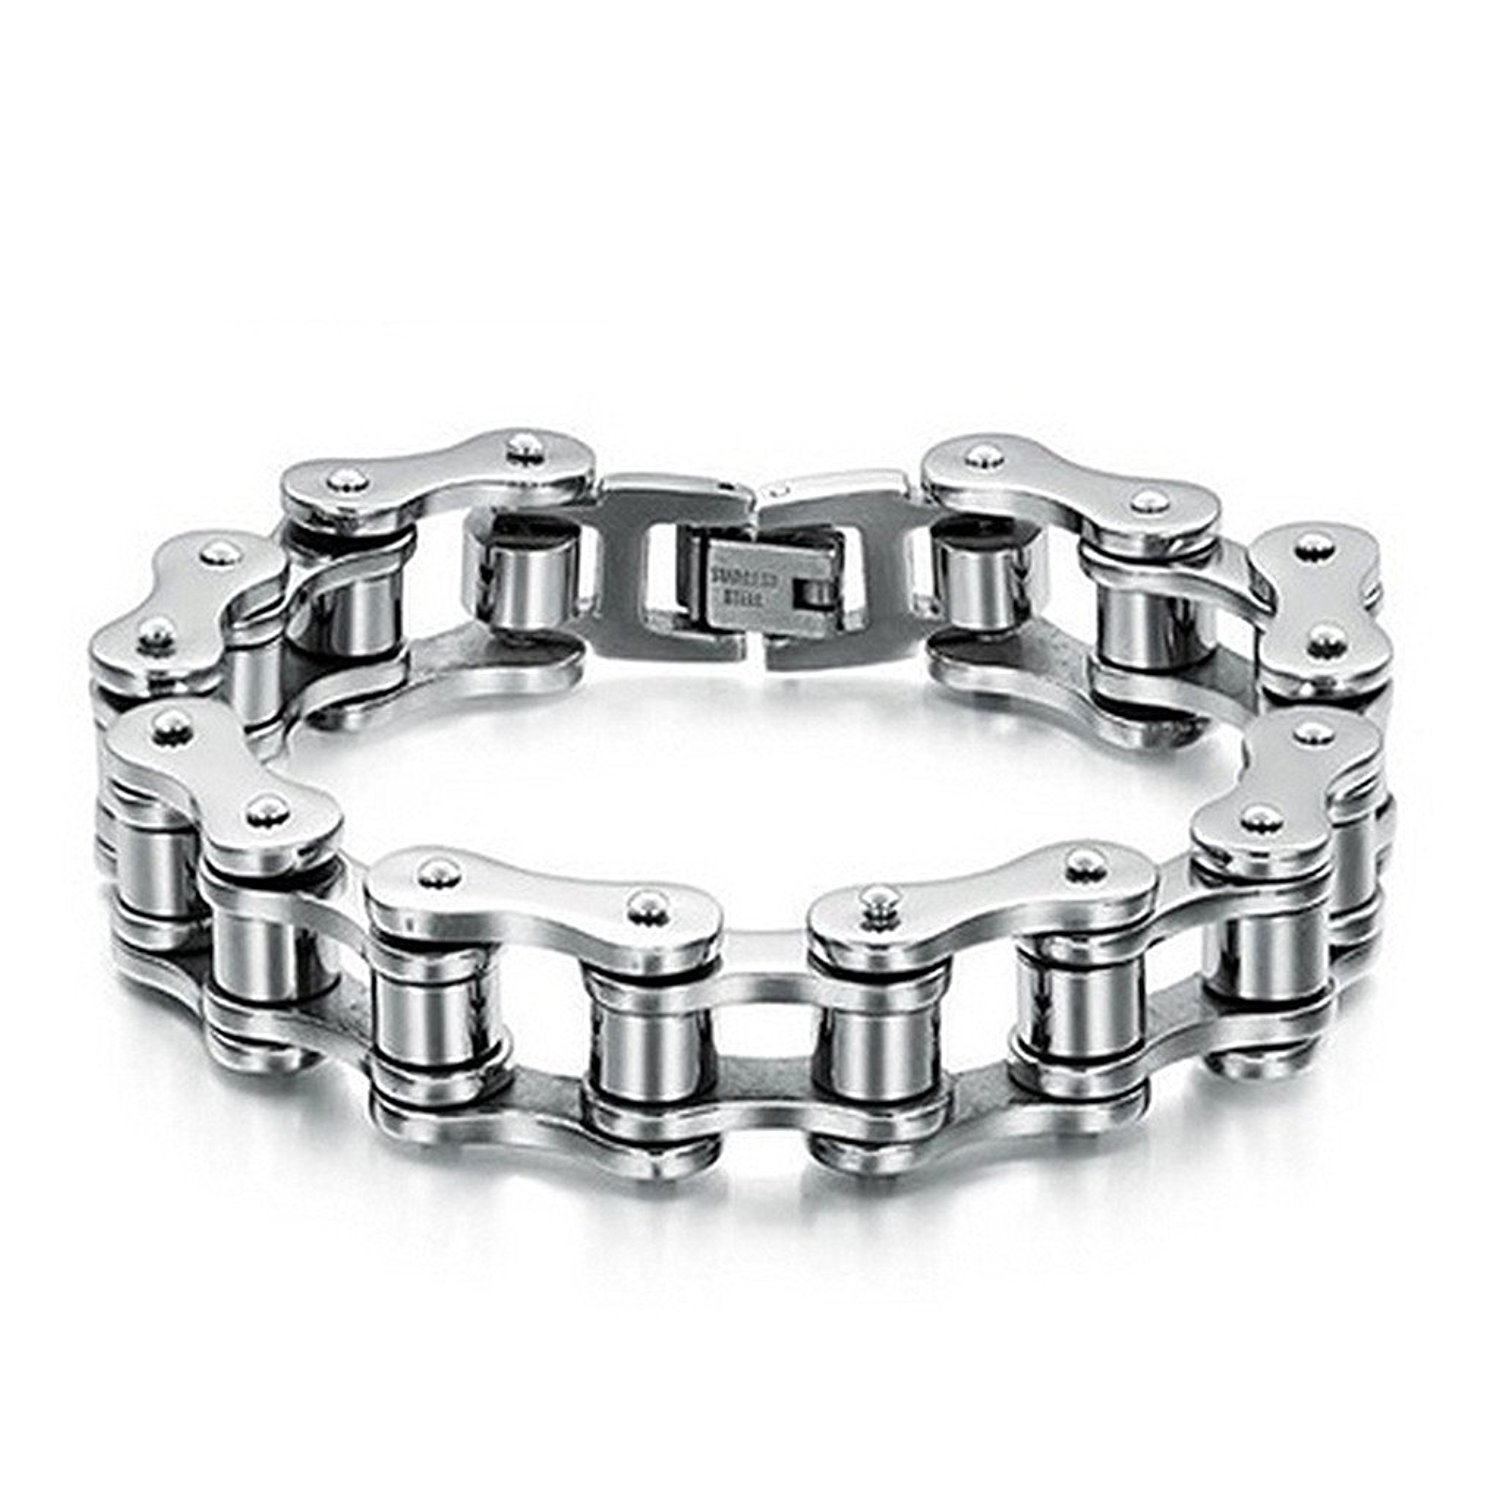 Bodhi2000 Mens Bike Bracelet Stainless Steel Chain Bracelet Bangle Link Chain Jewelry X431K70817BIY3OEBH29